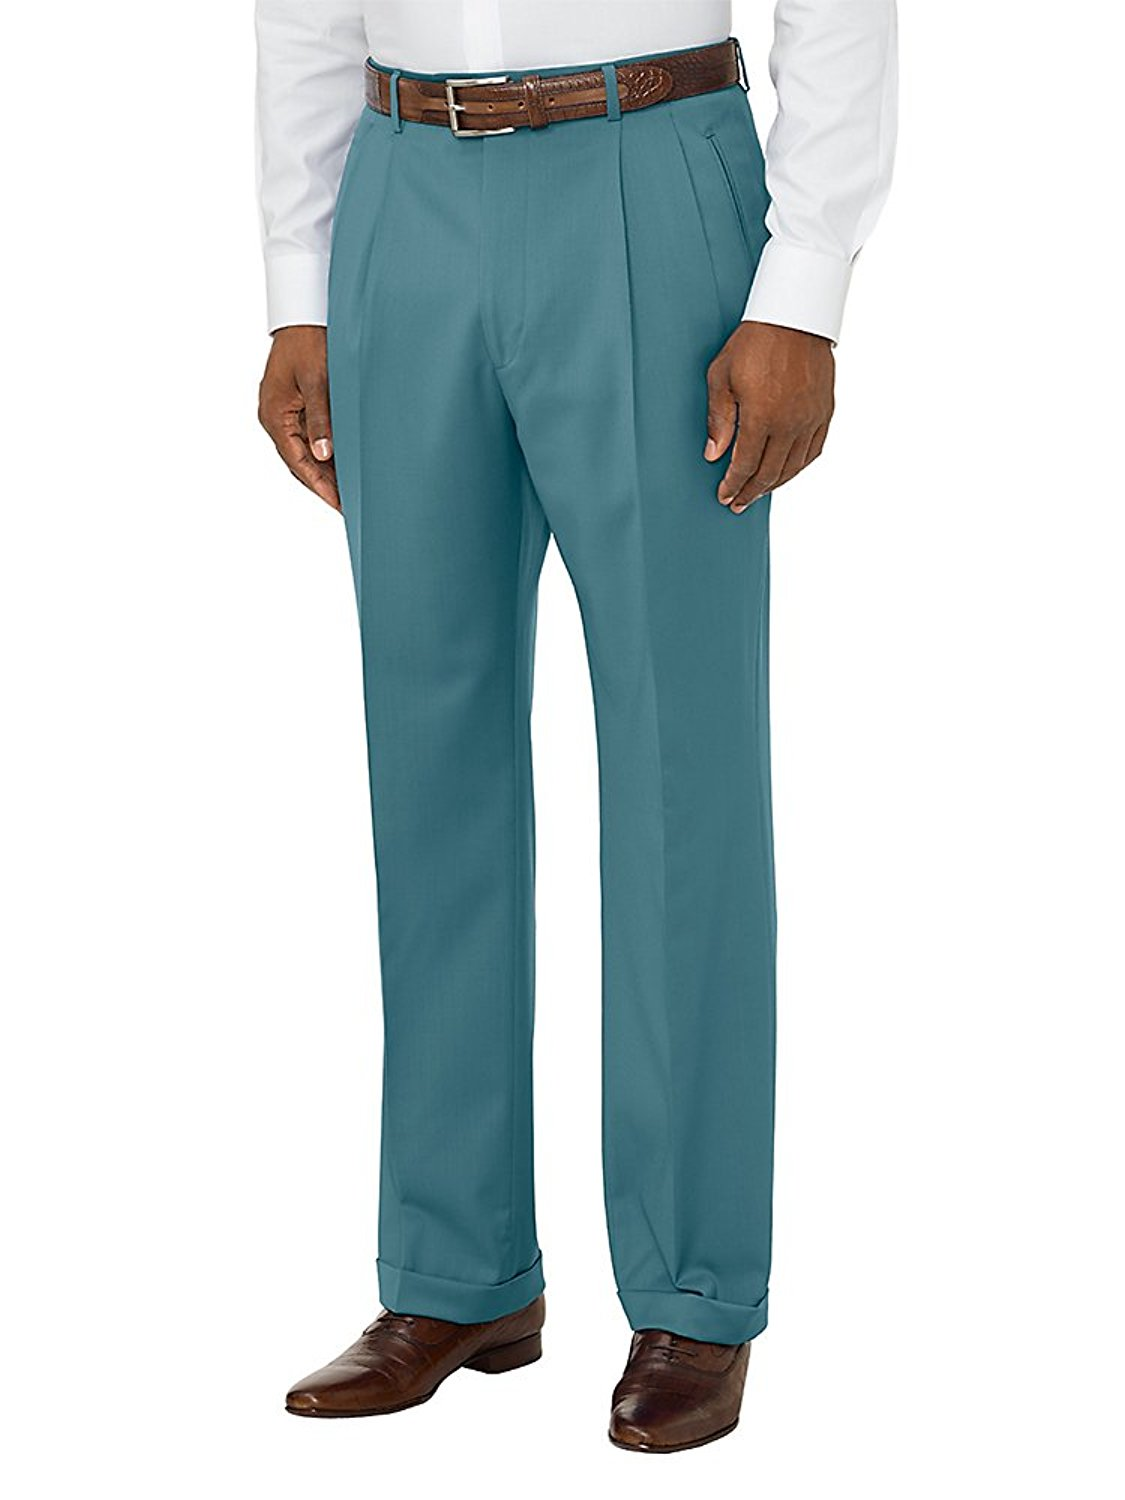 b3e4debfbf2 Get Quotations · Paul Fredrick Men s Comfort-Luxe Italian Wool Pleated Pants  Teal 40